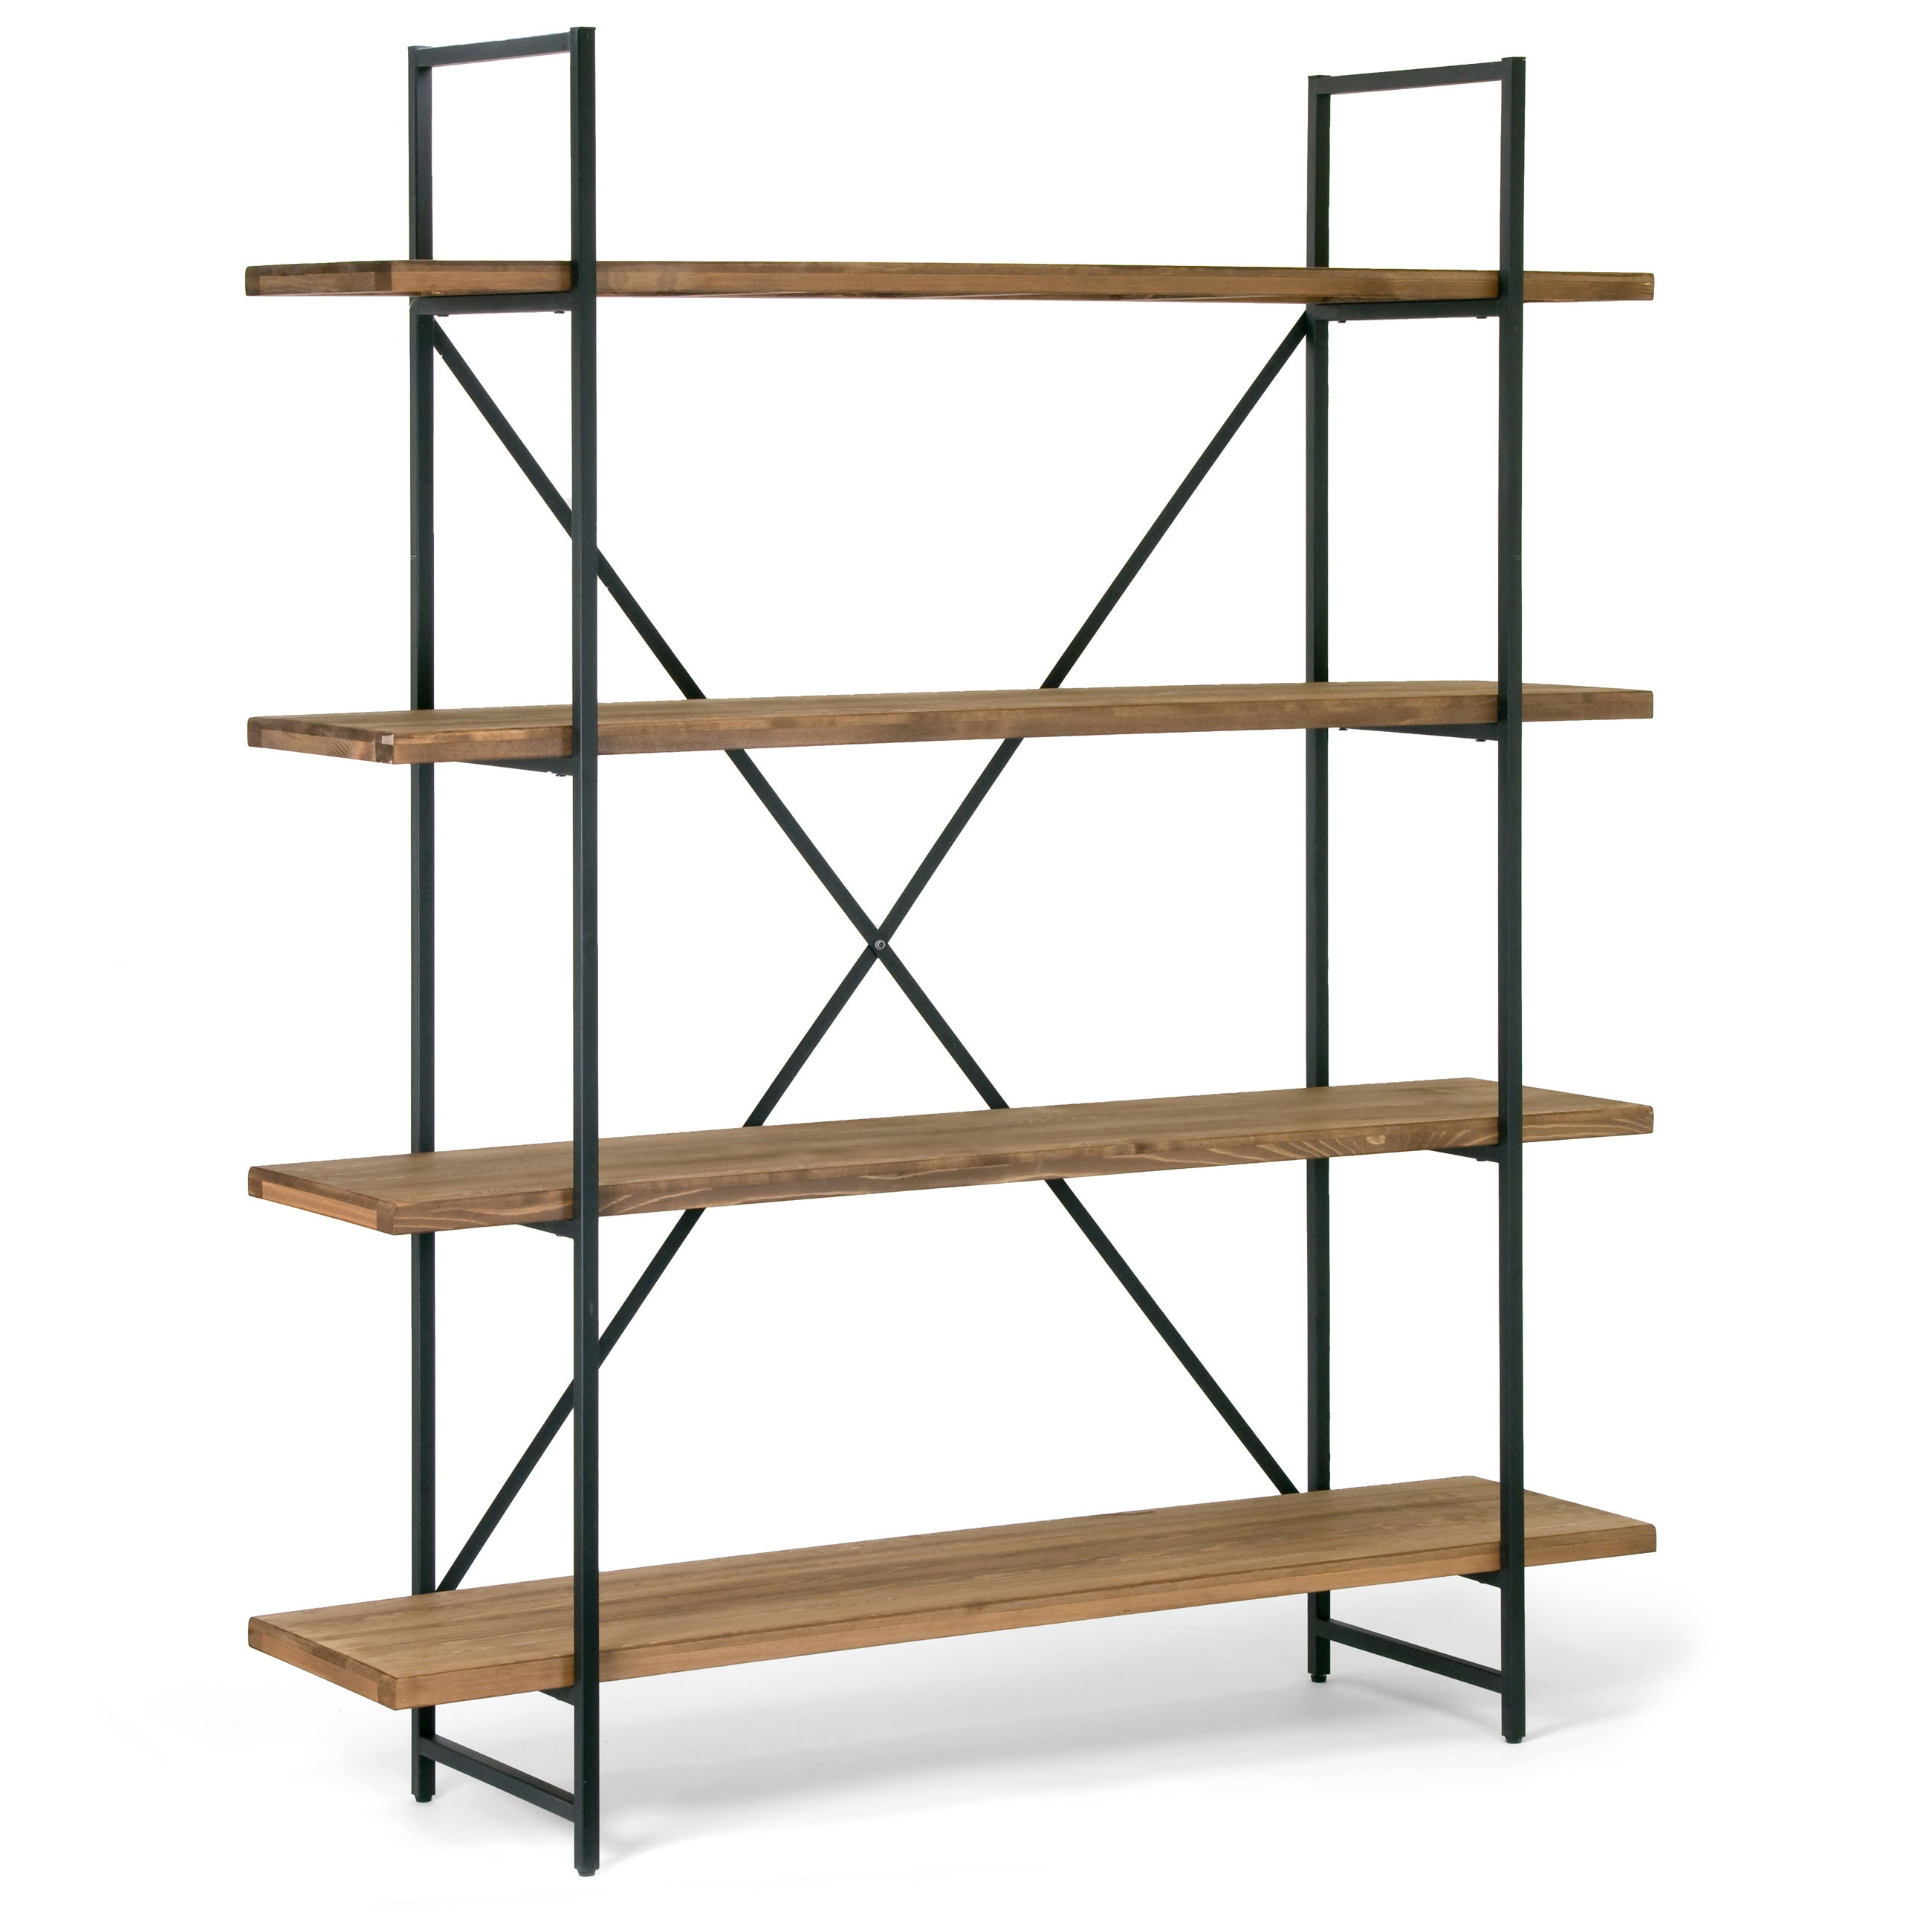 Buy Etagere Bookshelves & Bookcases Online At Overstock For Most Recent Macon Etagere Bookcases (View 12 of 20)